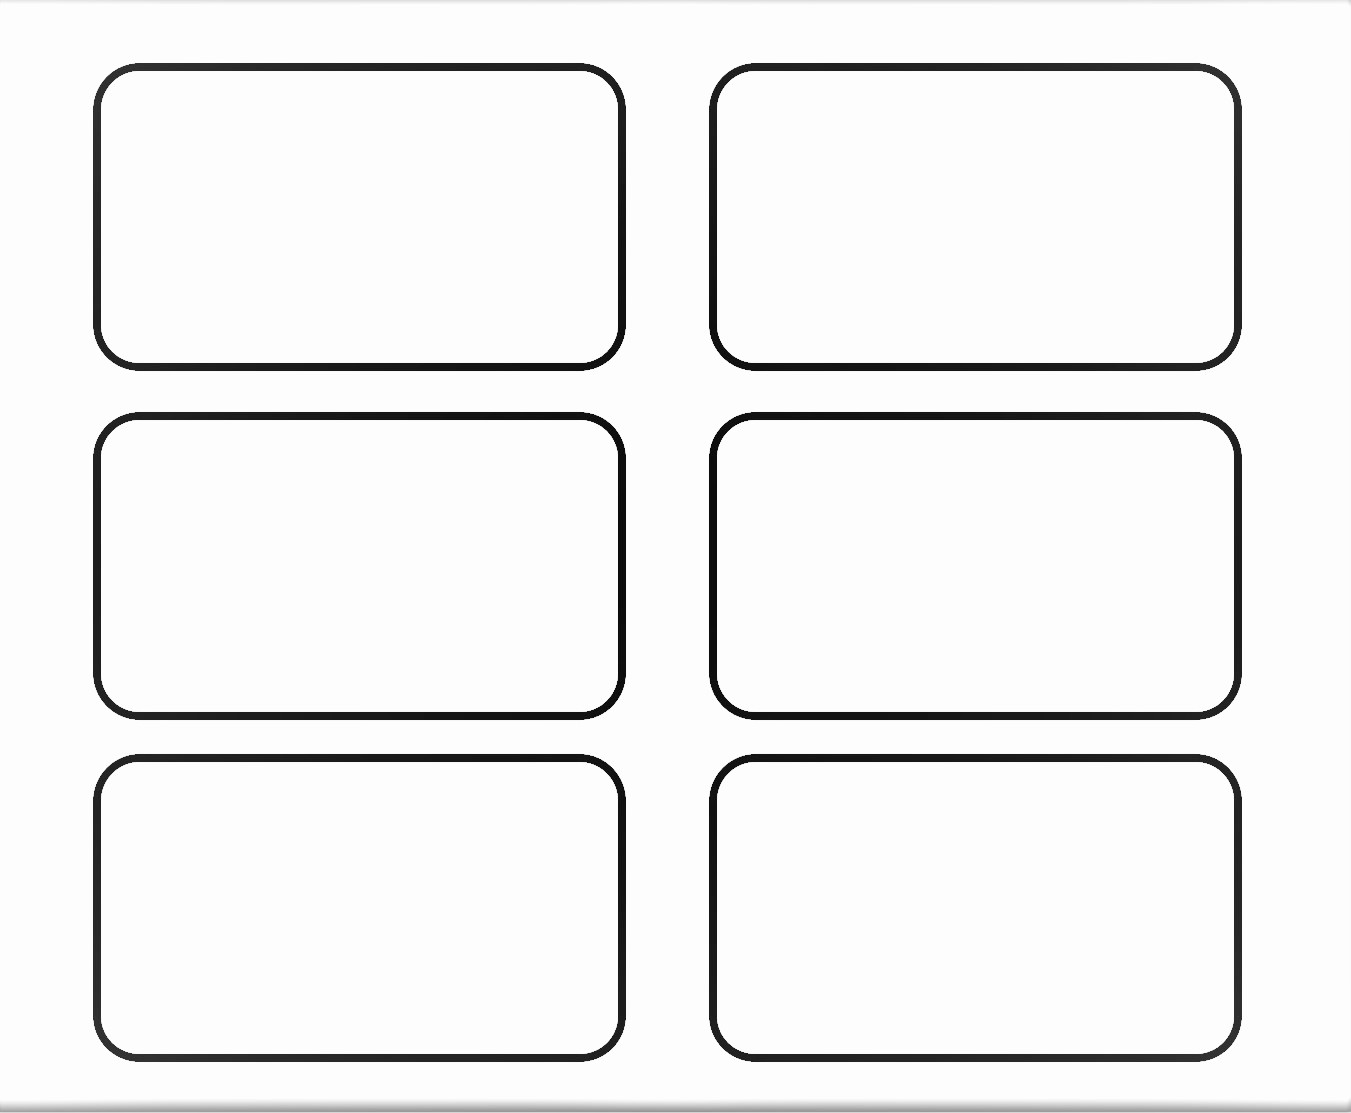 Free Tag Templates for Word Unique Name Tag Template Free Printable Design Word